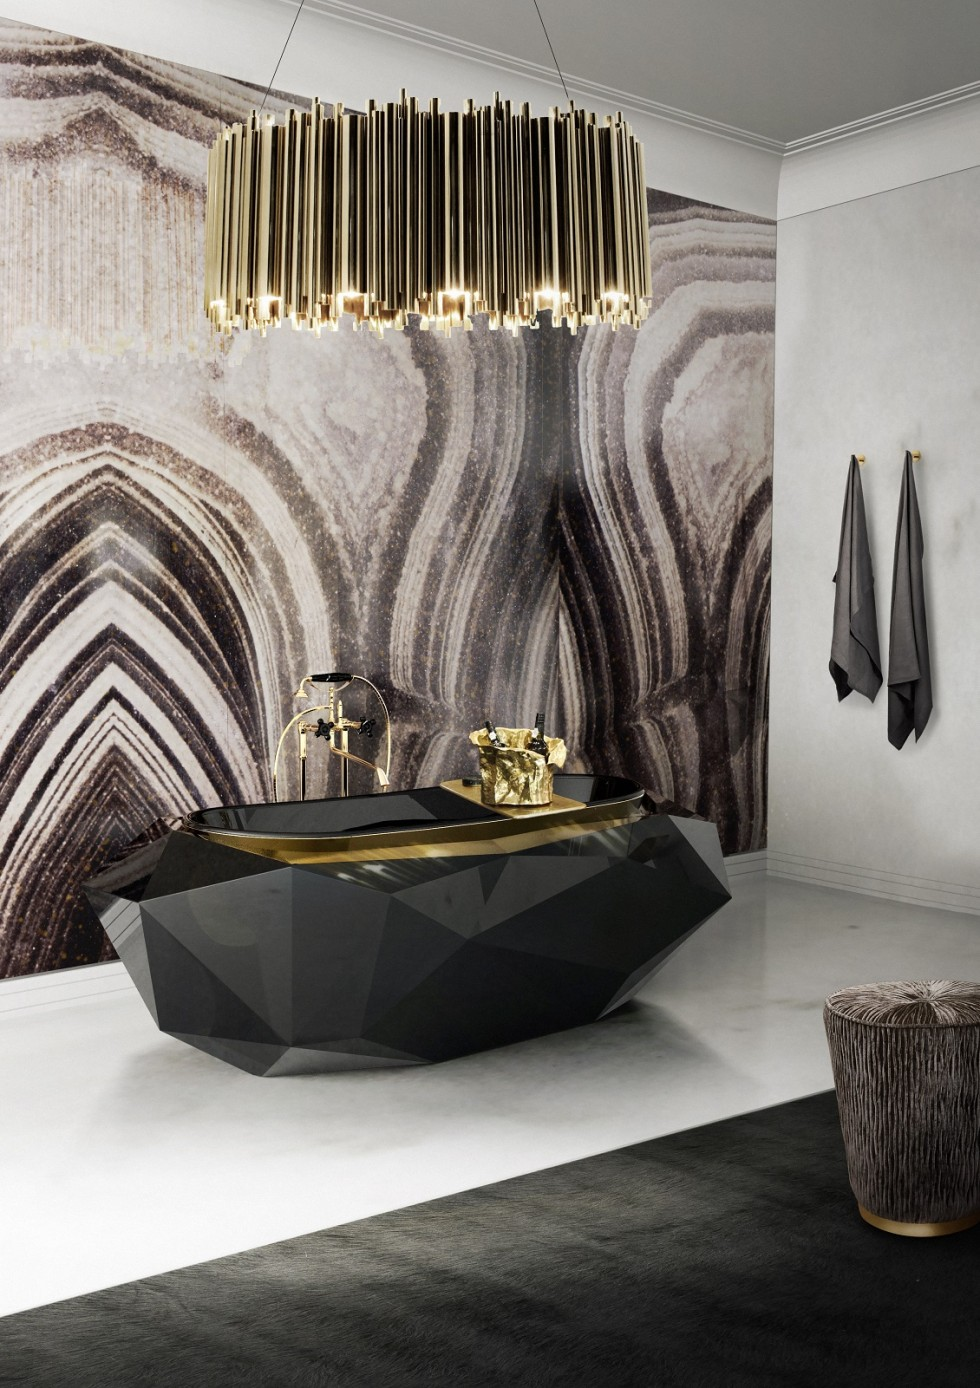 Find Out Now, What Should You Do For Your Modern Bathroom Modern Bathroom modern bathroom Find Out Now, What Should You Do For Your Modern Bathroom? Find Out Now What Should You Do For Your Modern Bathroom